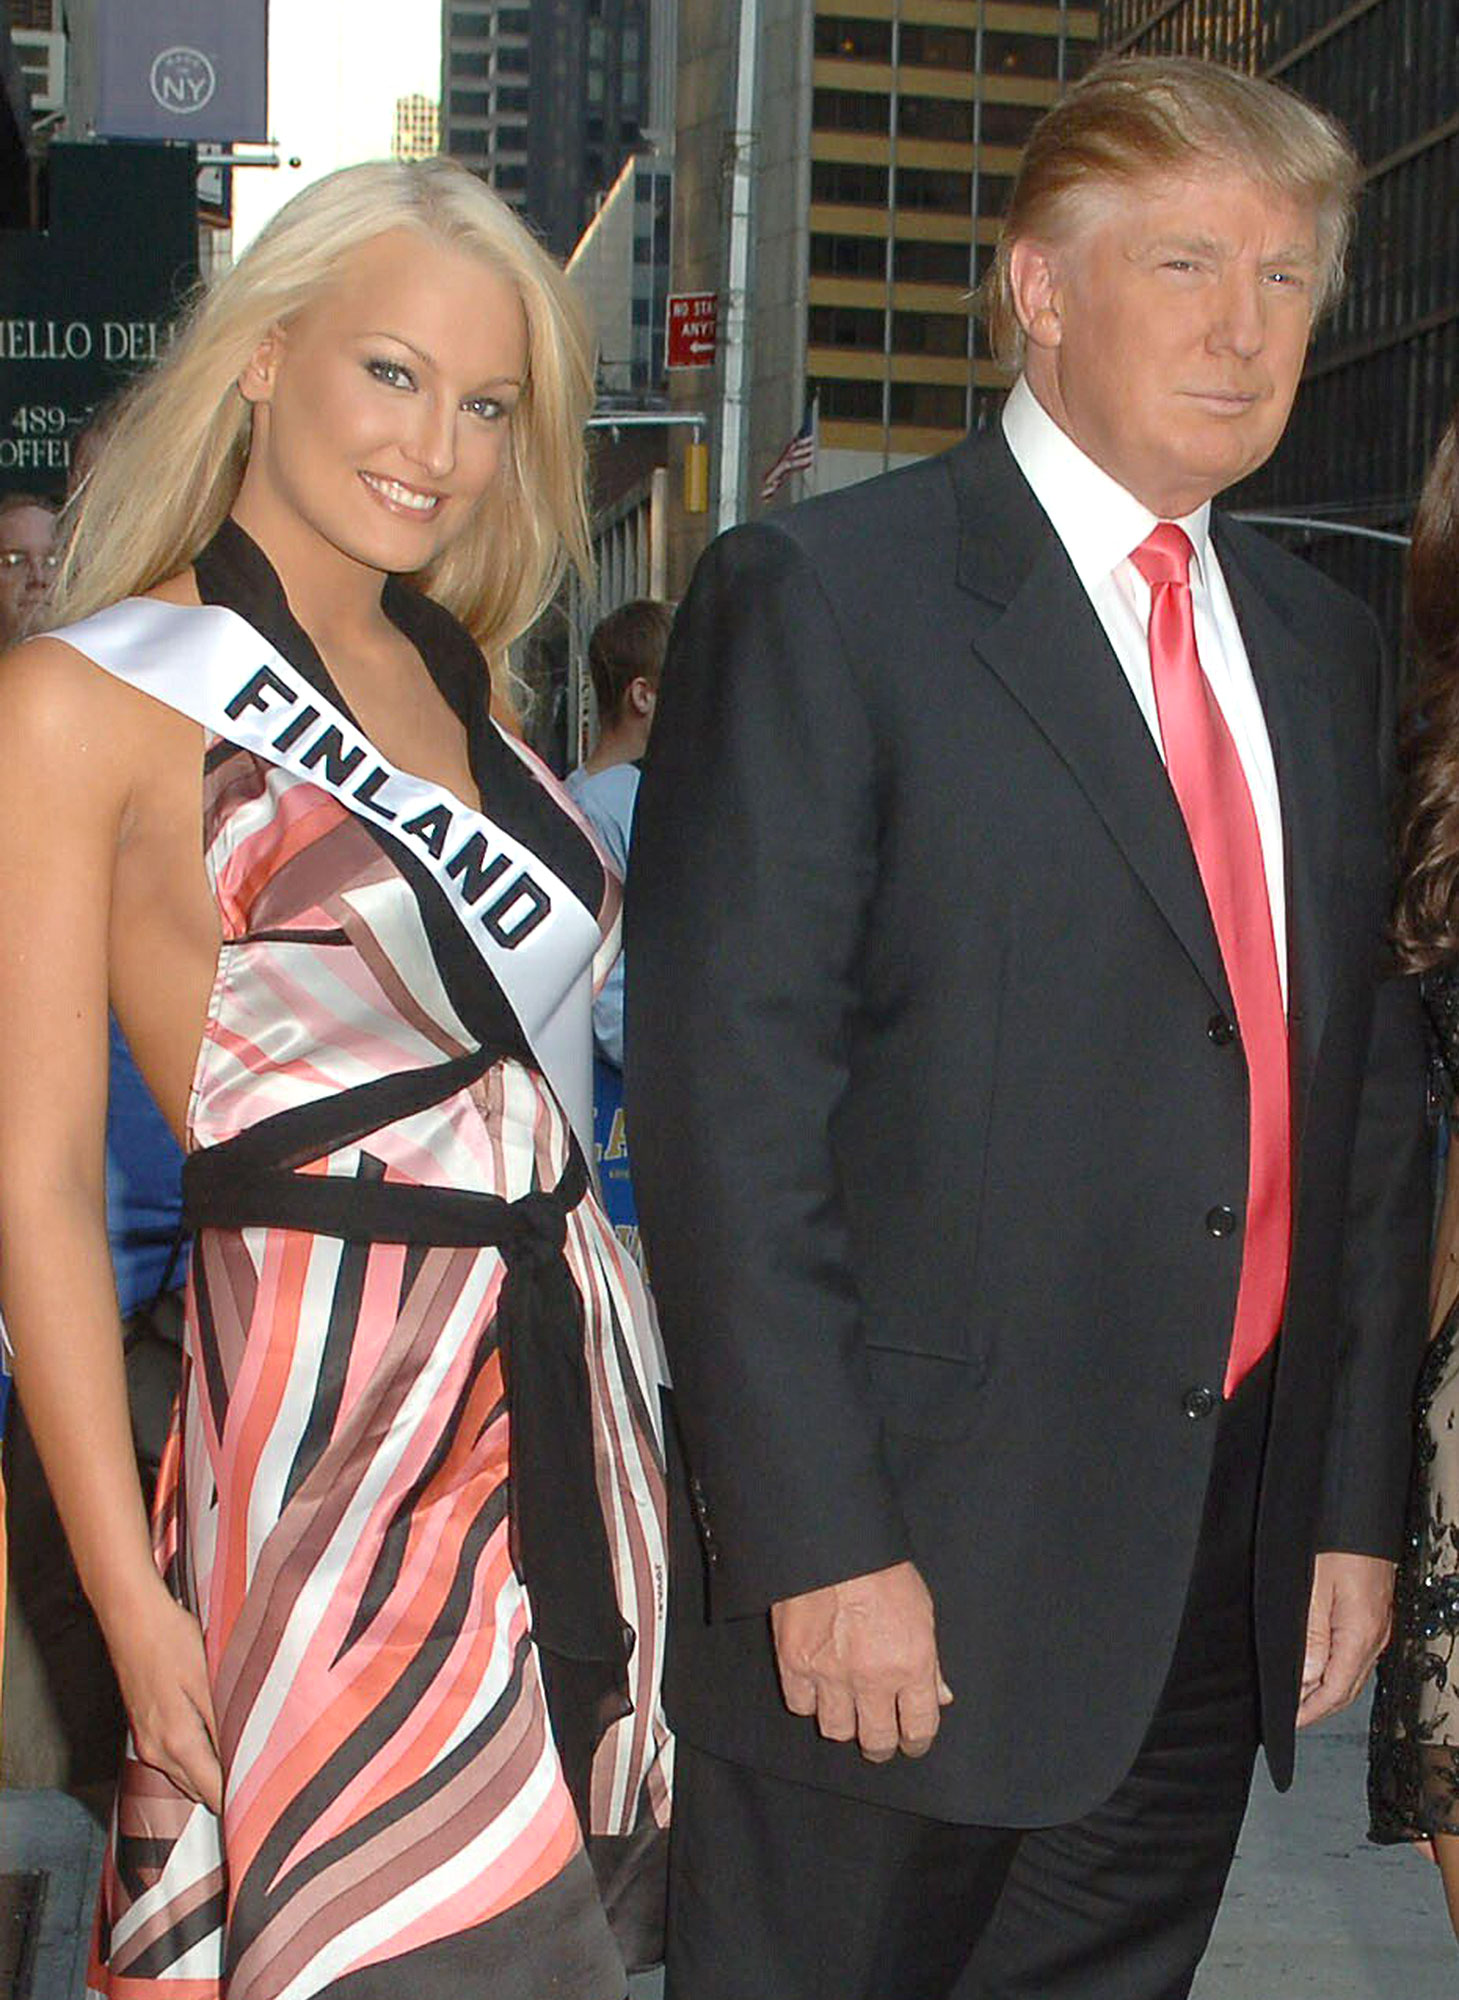 Donald Trump with Miss Universe contestants at The Late Show with David Letterman, NY